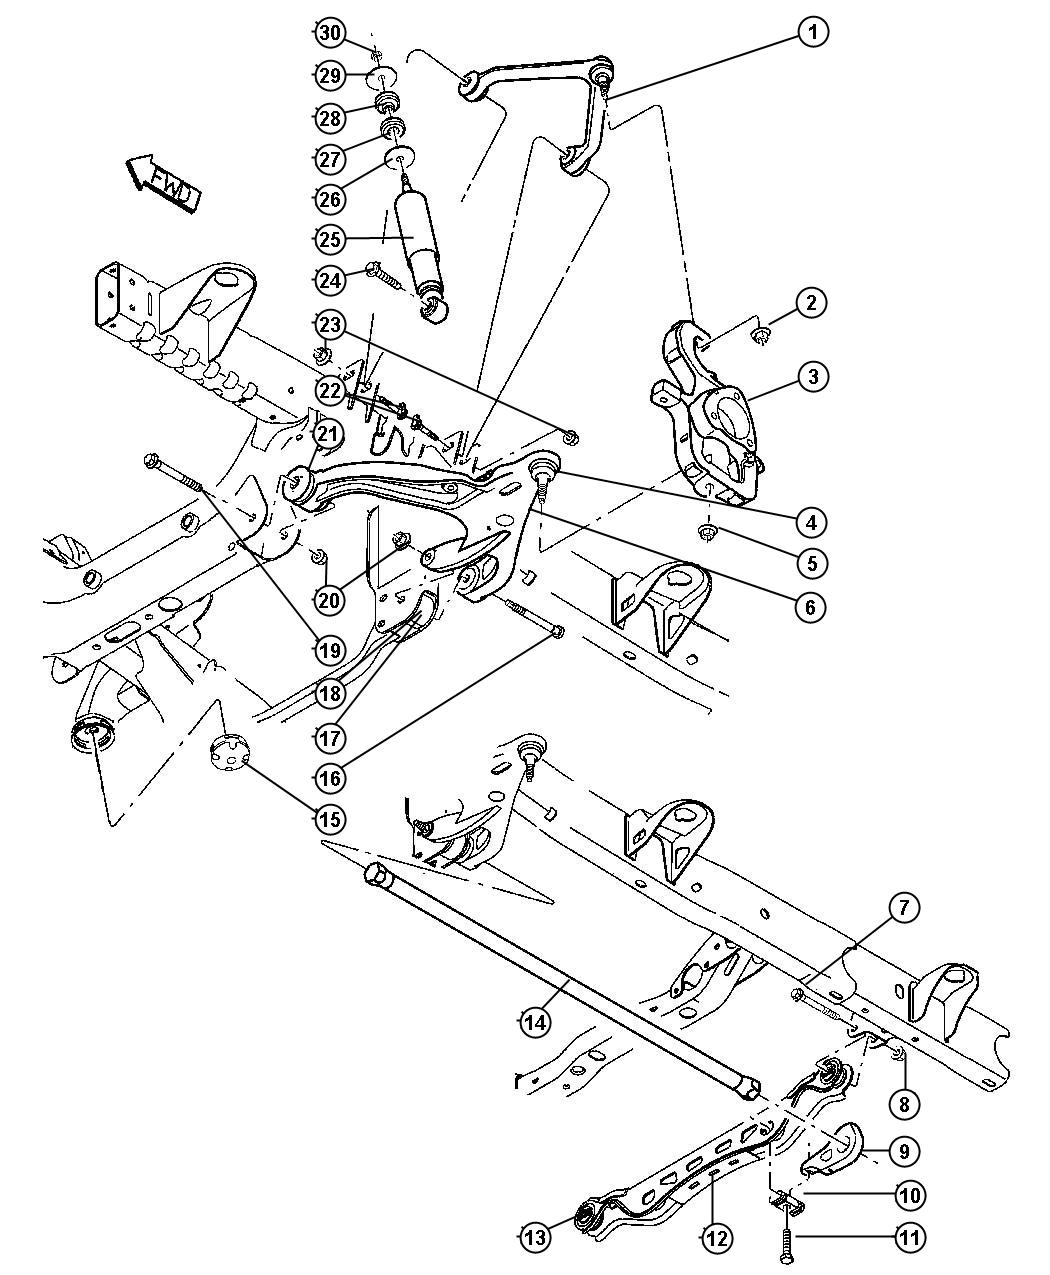 Dodge Ram 1500 Crossmember  Front Suspension  With Bushings